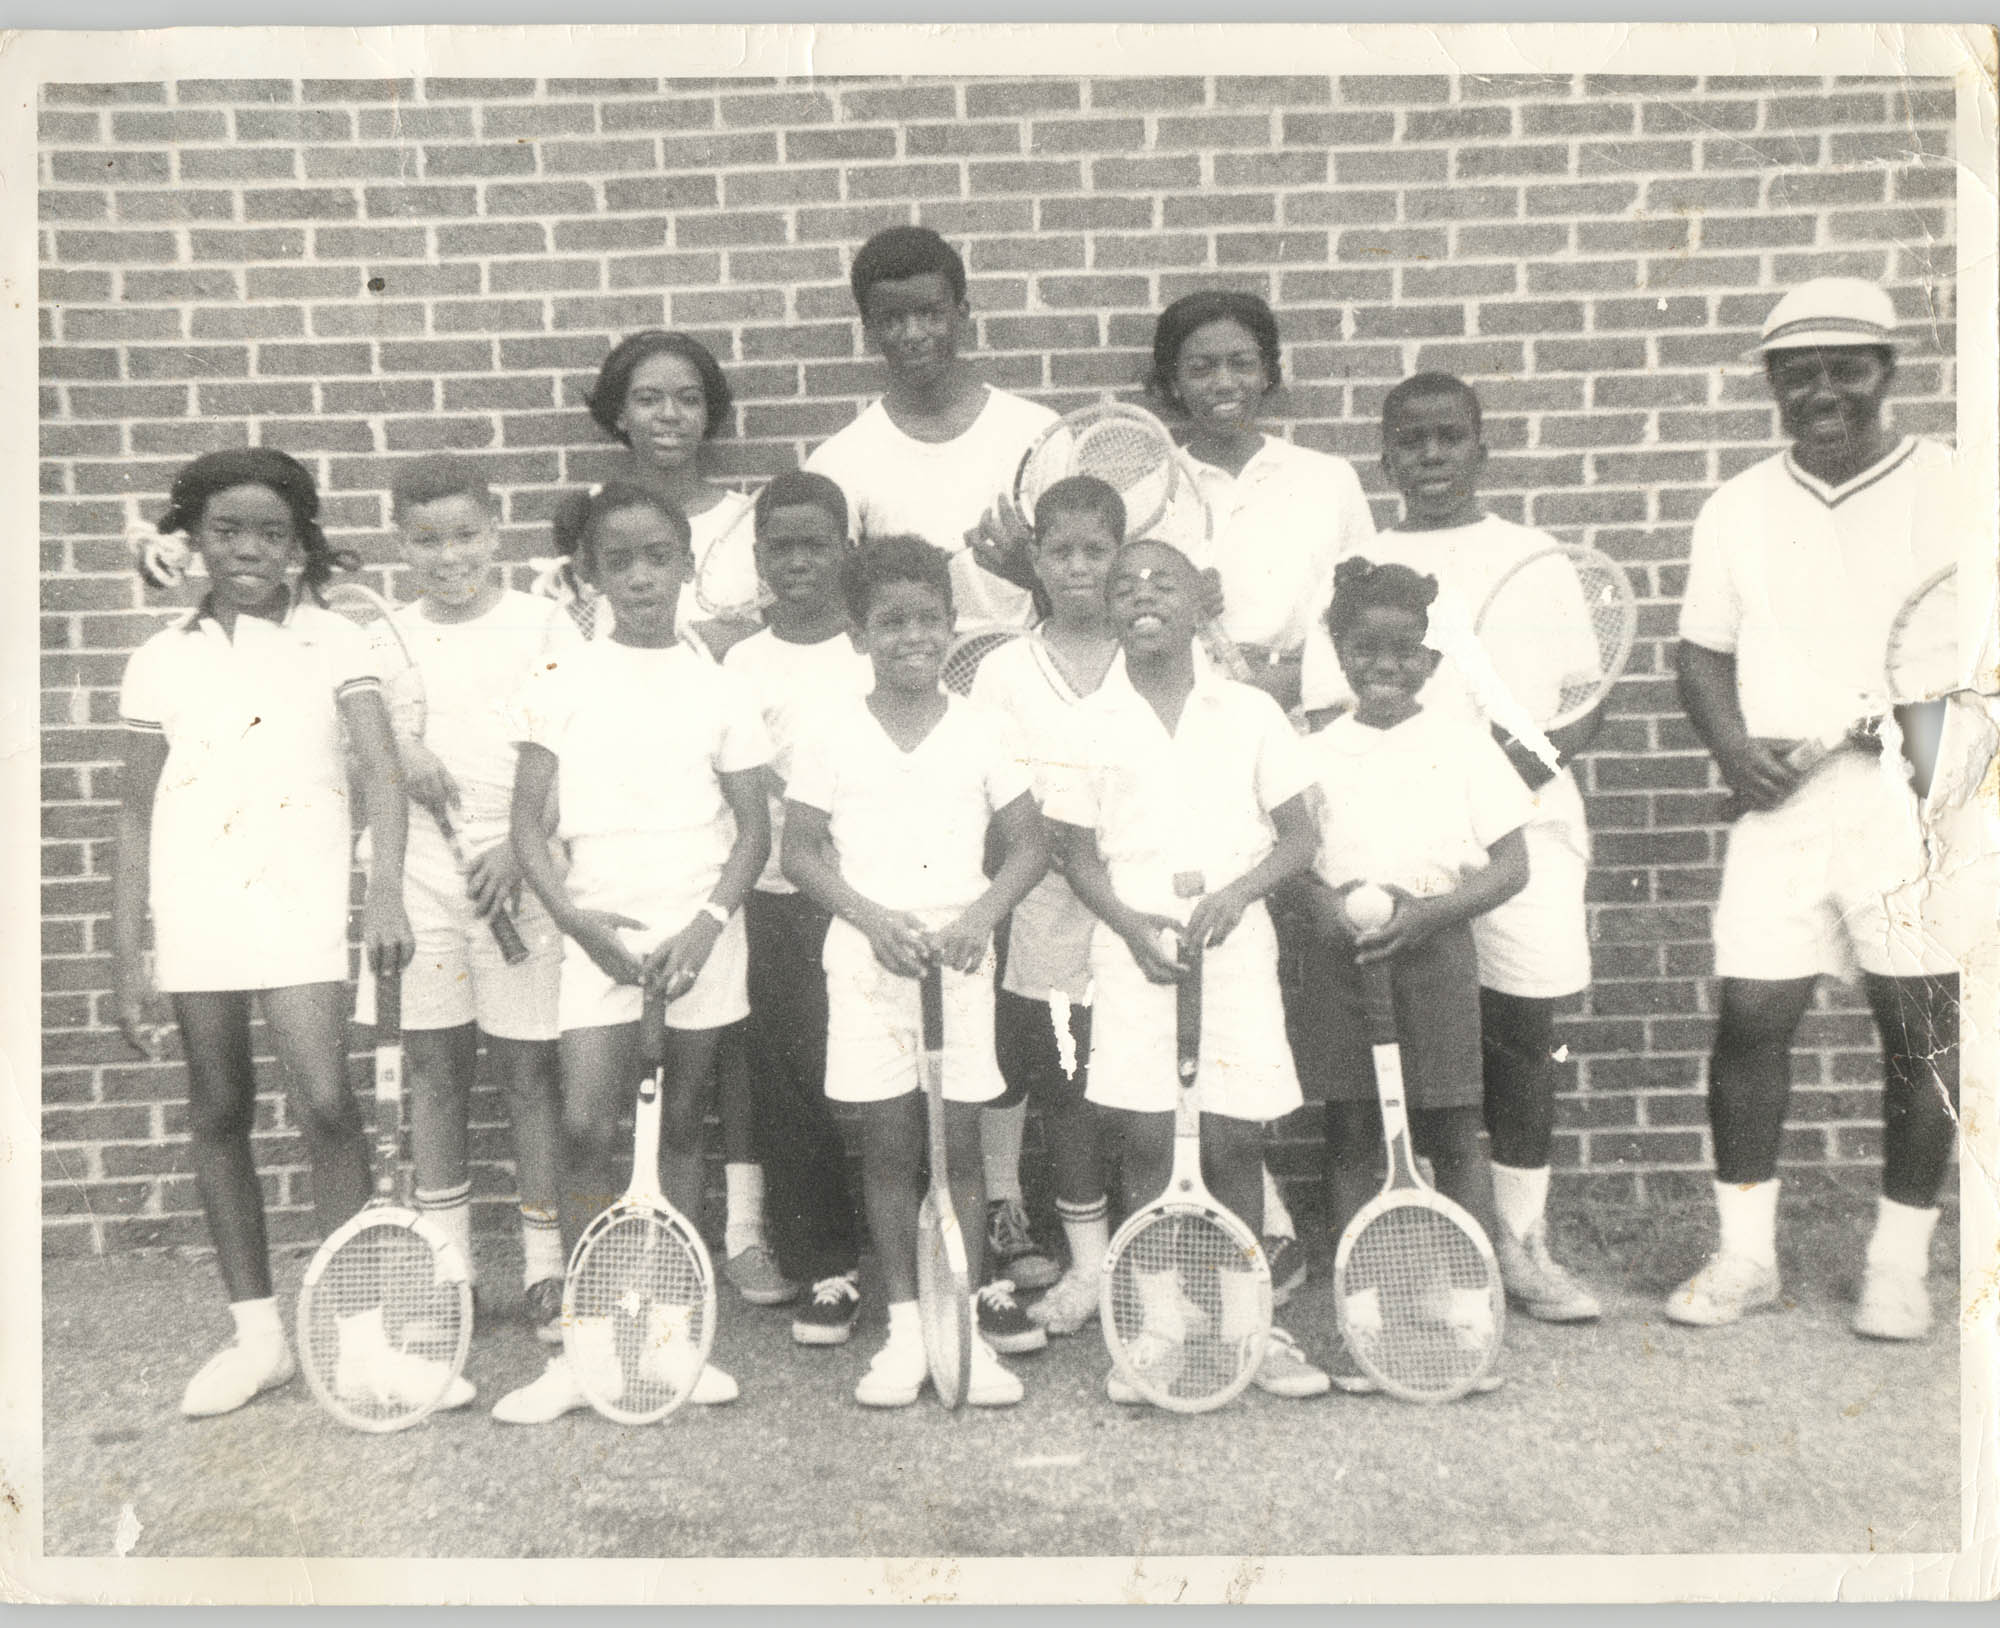 Photograph of Children with Tennis Rackets